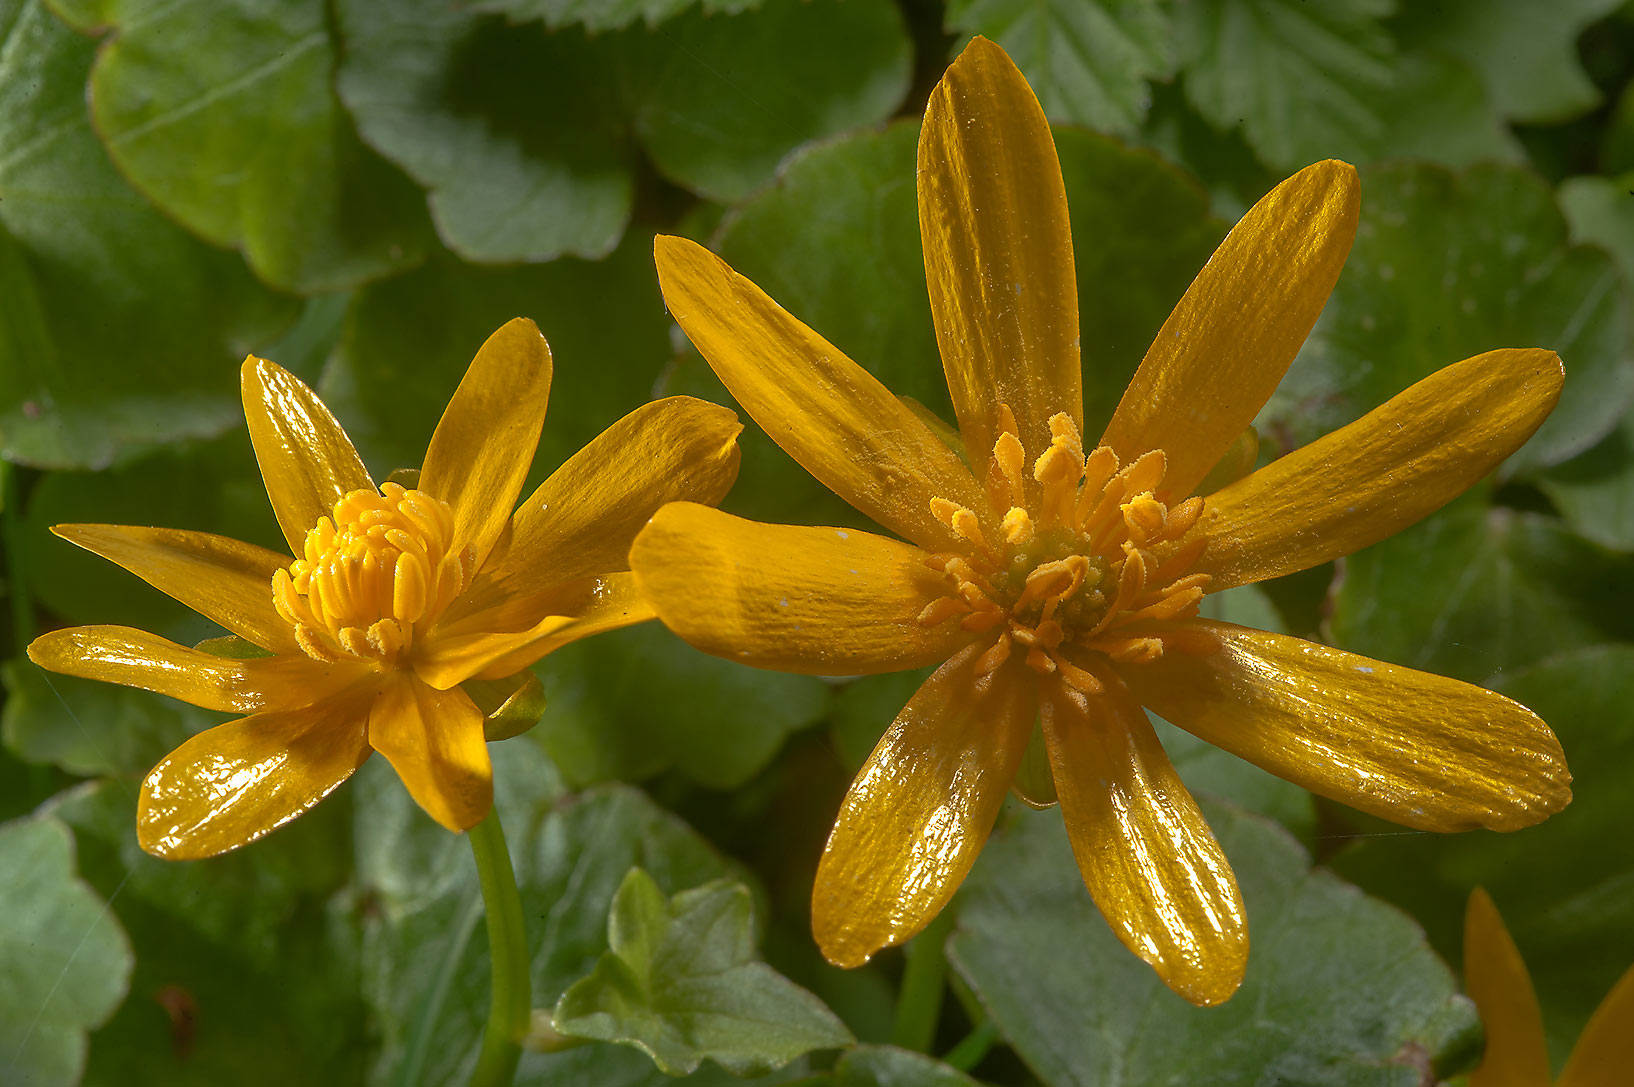 Flowers of lesser celandine (Ficaria verna...a suburb of St.Petersburg, Russia